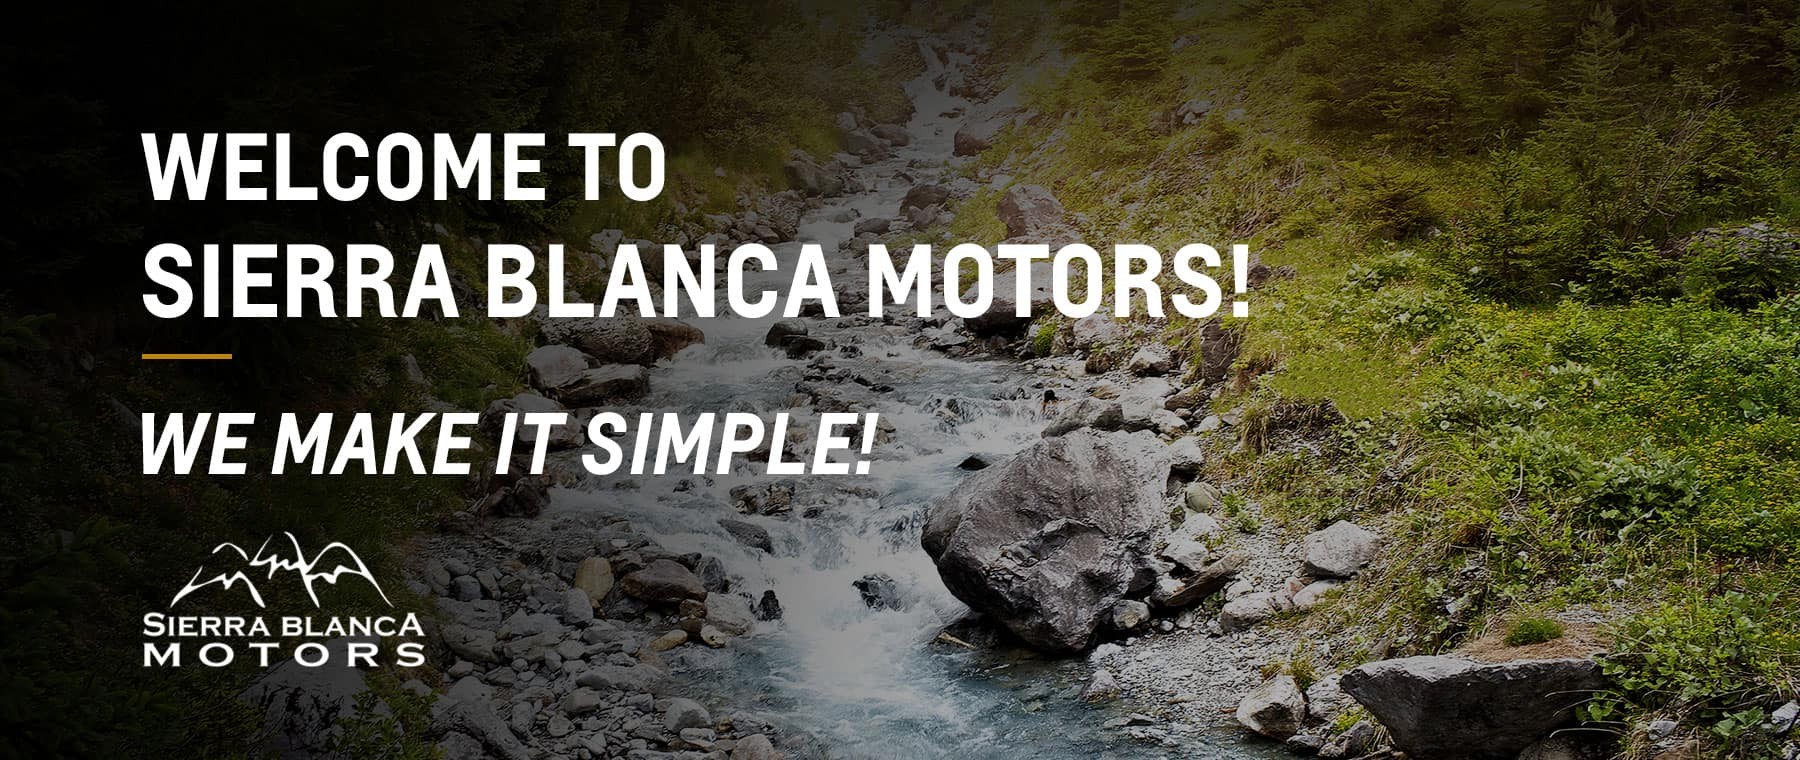 Welcome to Sierra Blanca Motors